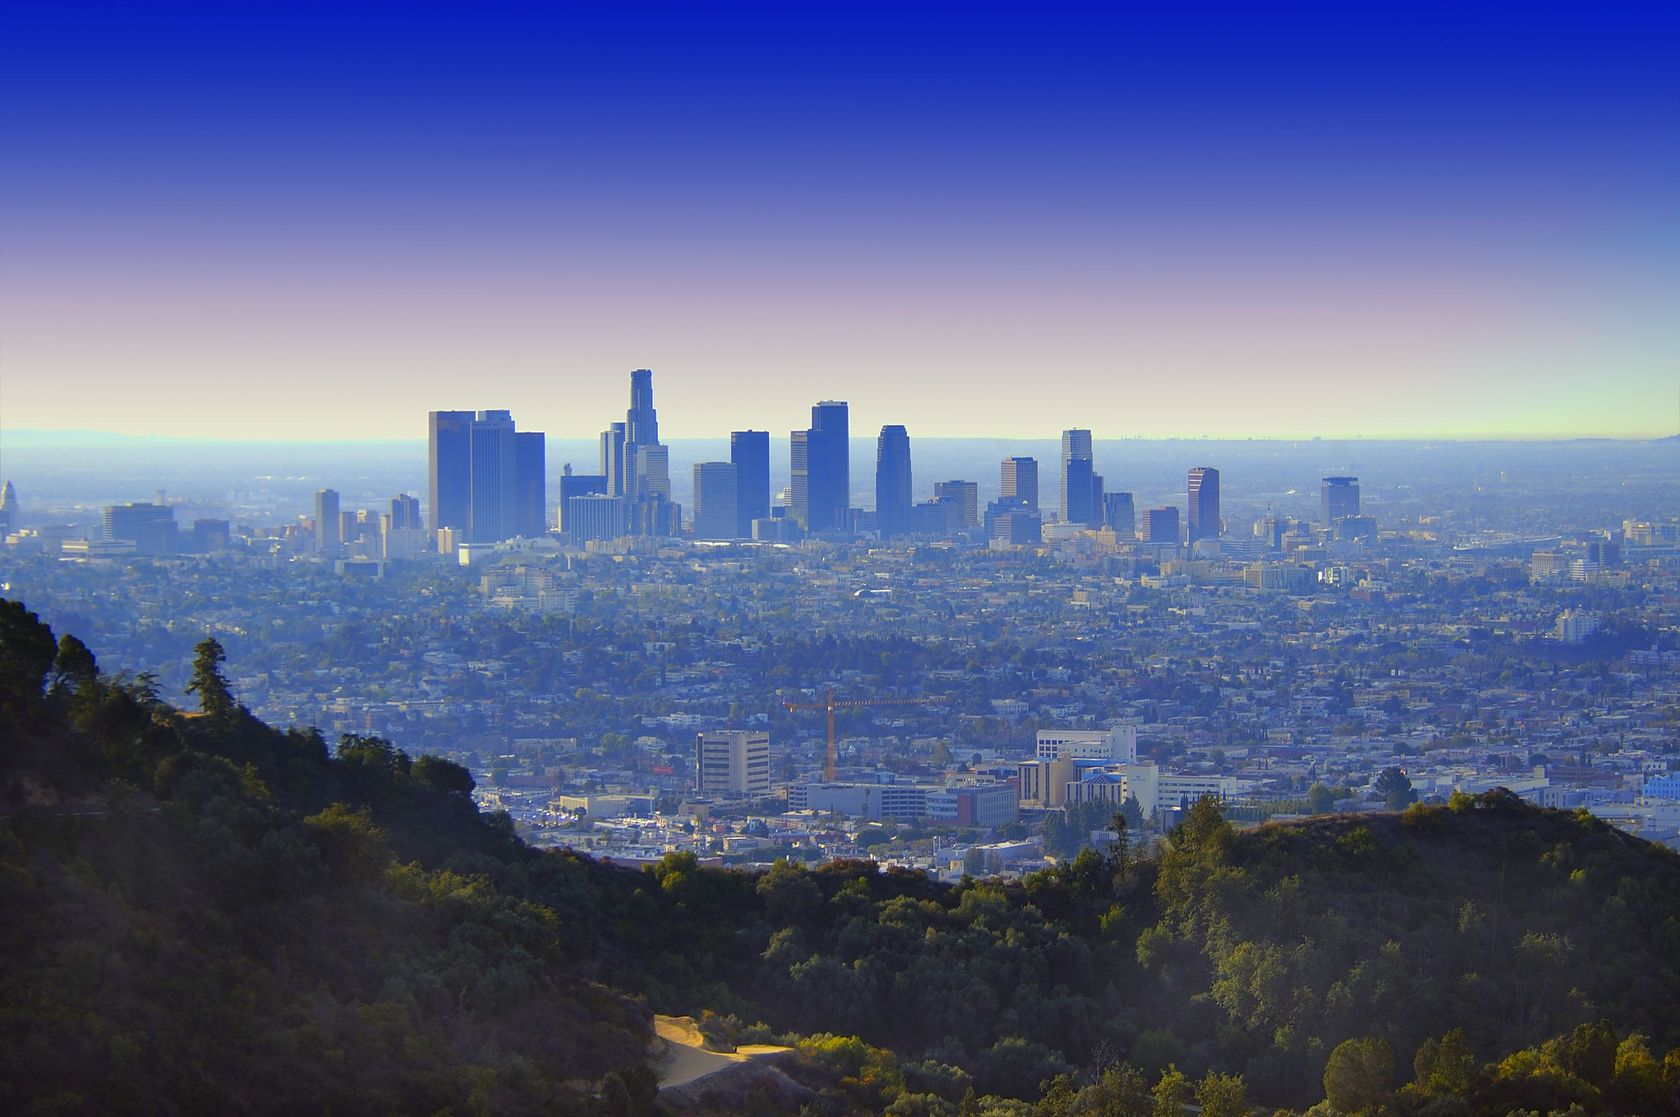 Aerial Filming Los Angeles - Hire The Experts! Stock photography los angeles